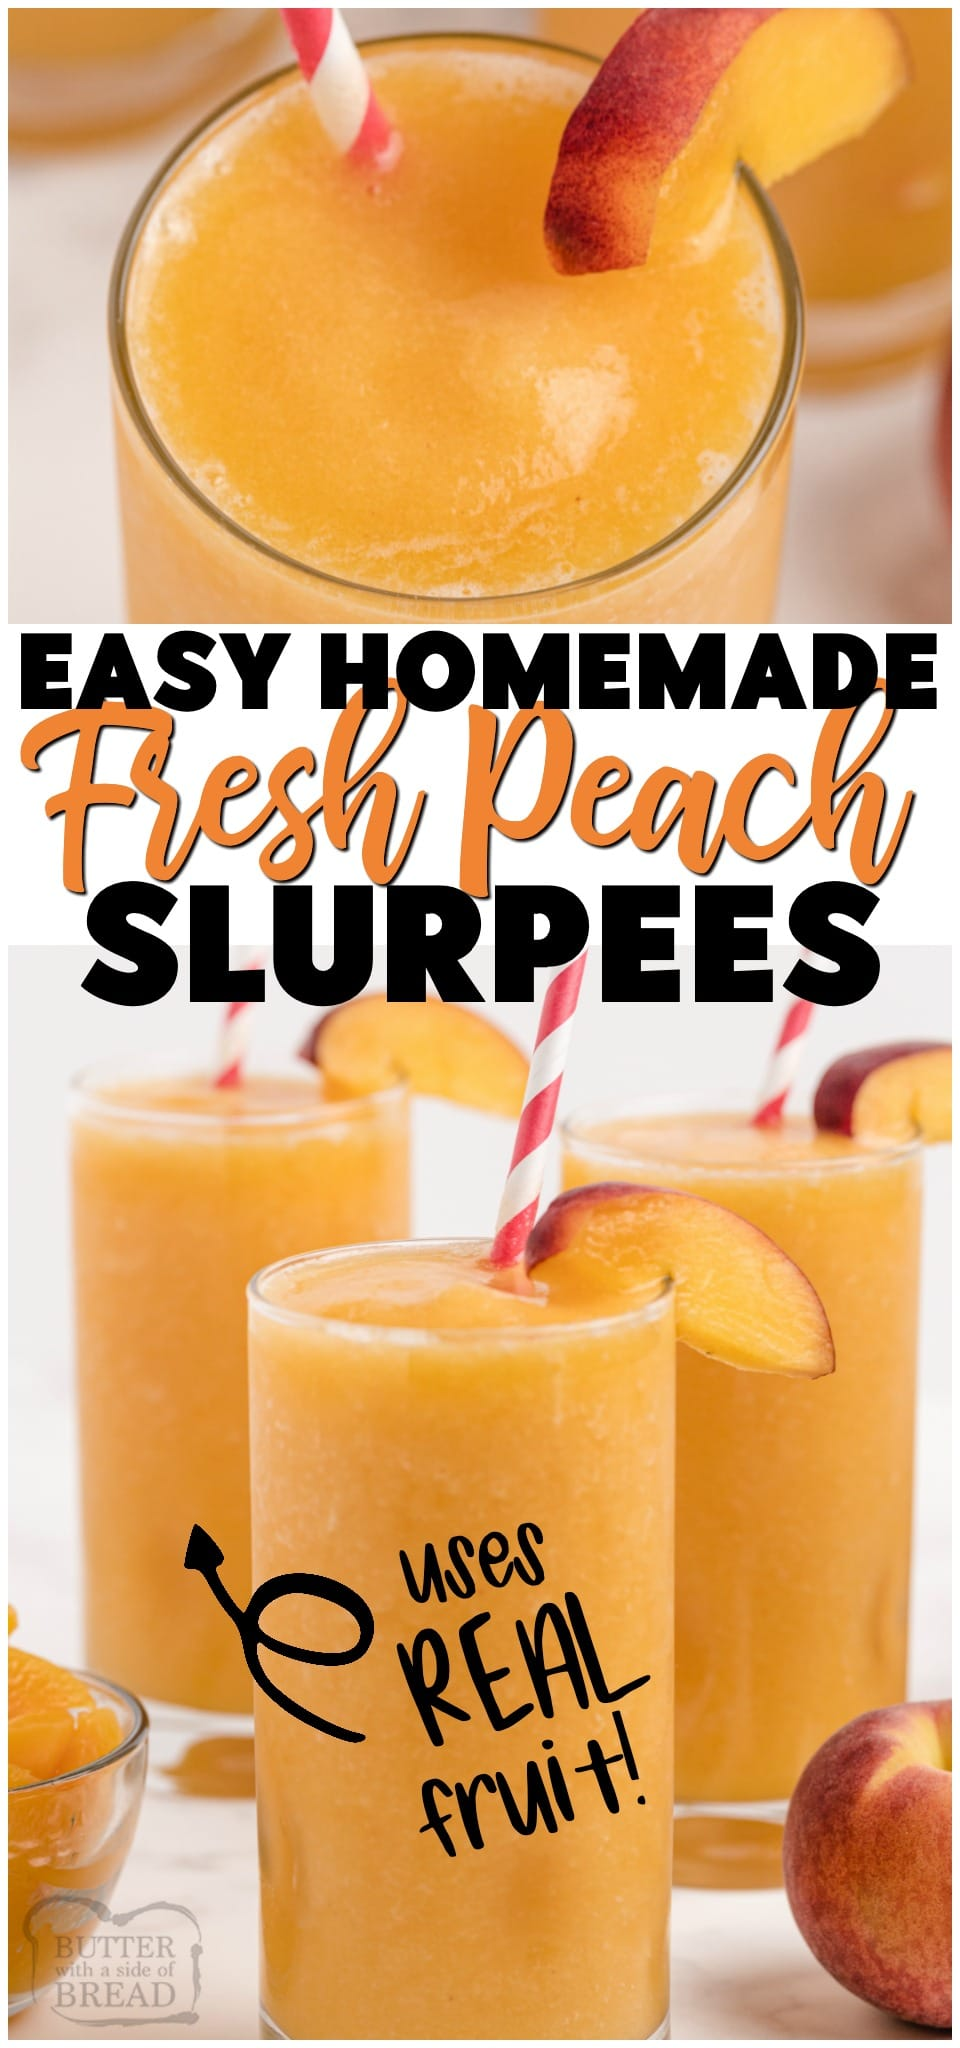 Homemade Peach Slurpees ~ only 3 ingredients & minutes to make! Combine fresh fruit, sugar (or substitute) and something to add some fizz & you've got your own Homemade Slurpees!#freshfruit #fruit #peaches #slurpee #homemade #dessert #summer #recipe from BUTTER WITH A SIDE OF BREAD